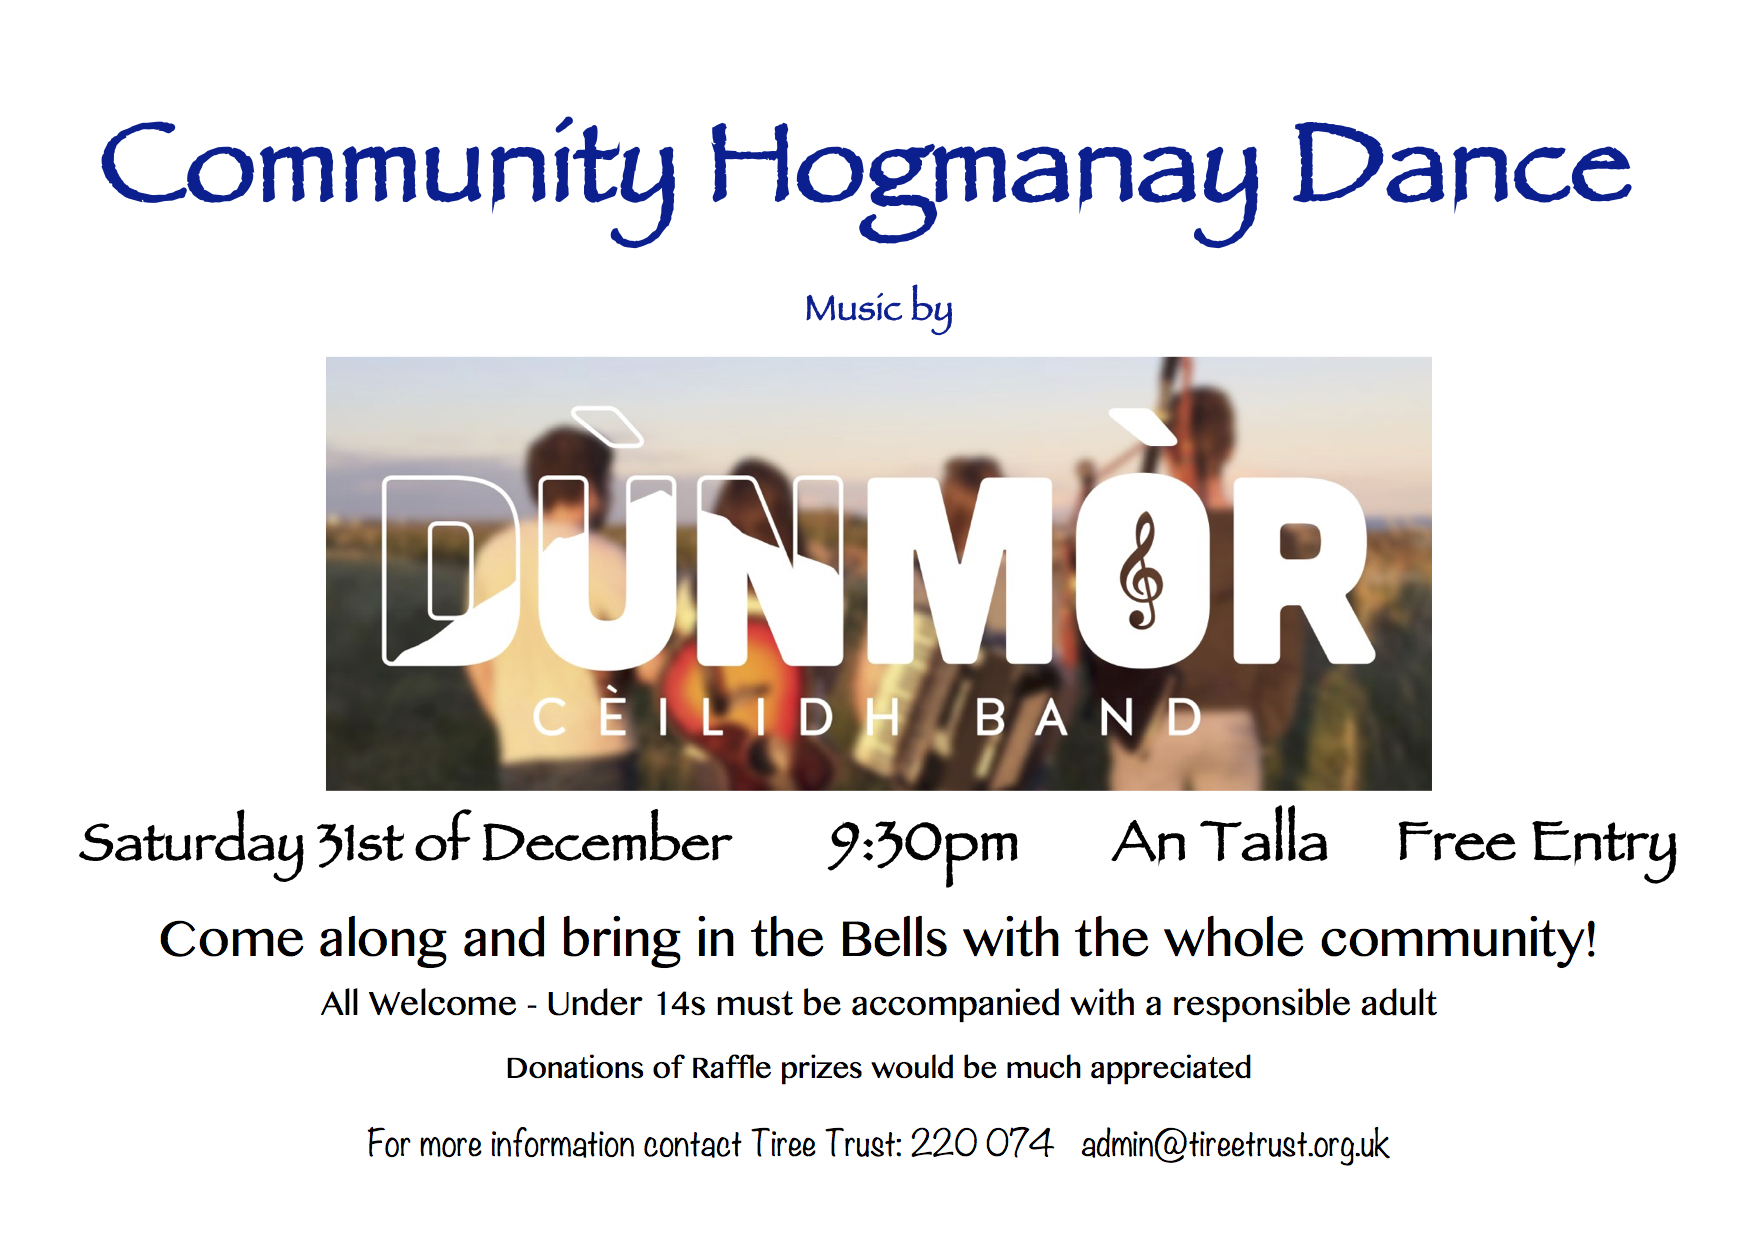 Community Hogmanay Dance